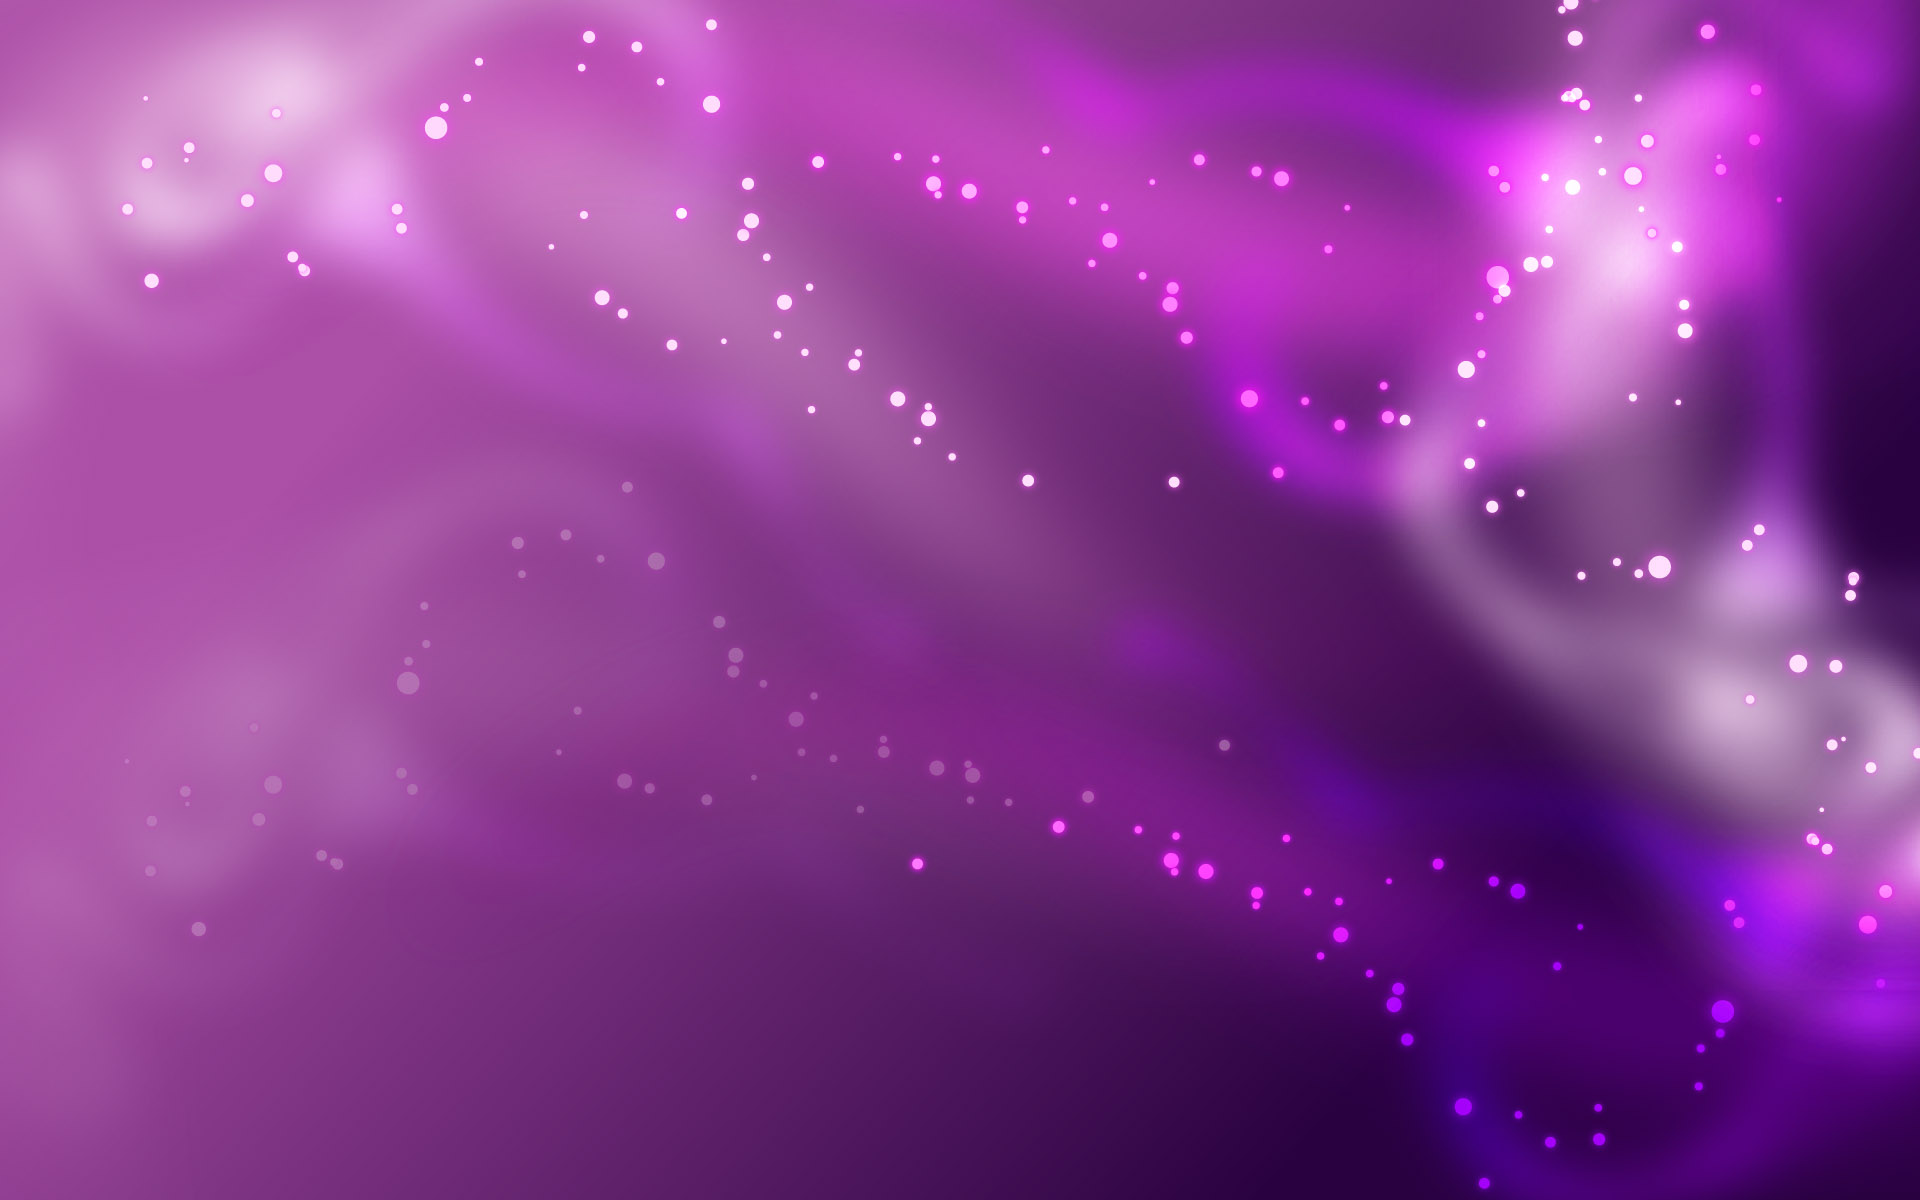 Purple wallpaper 11 1920x1200